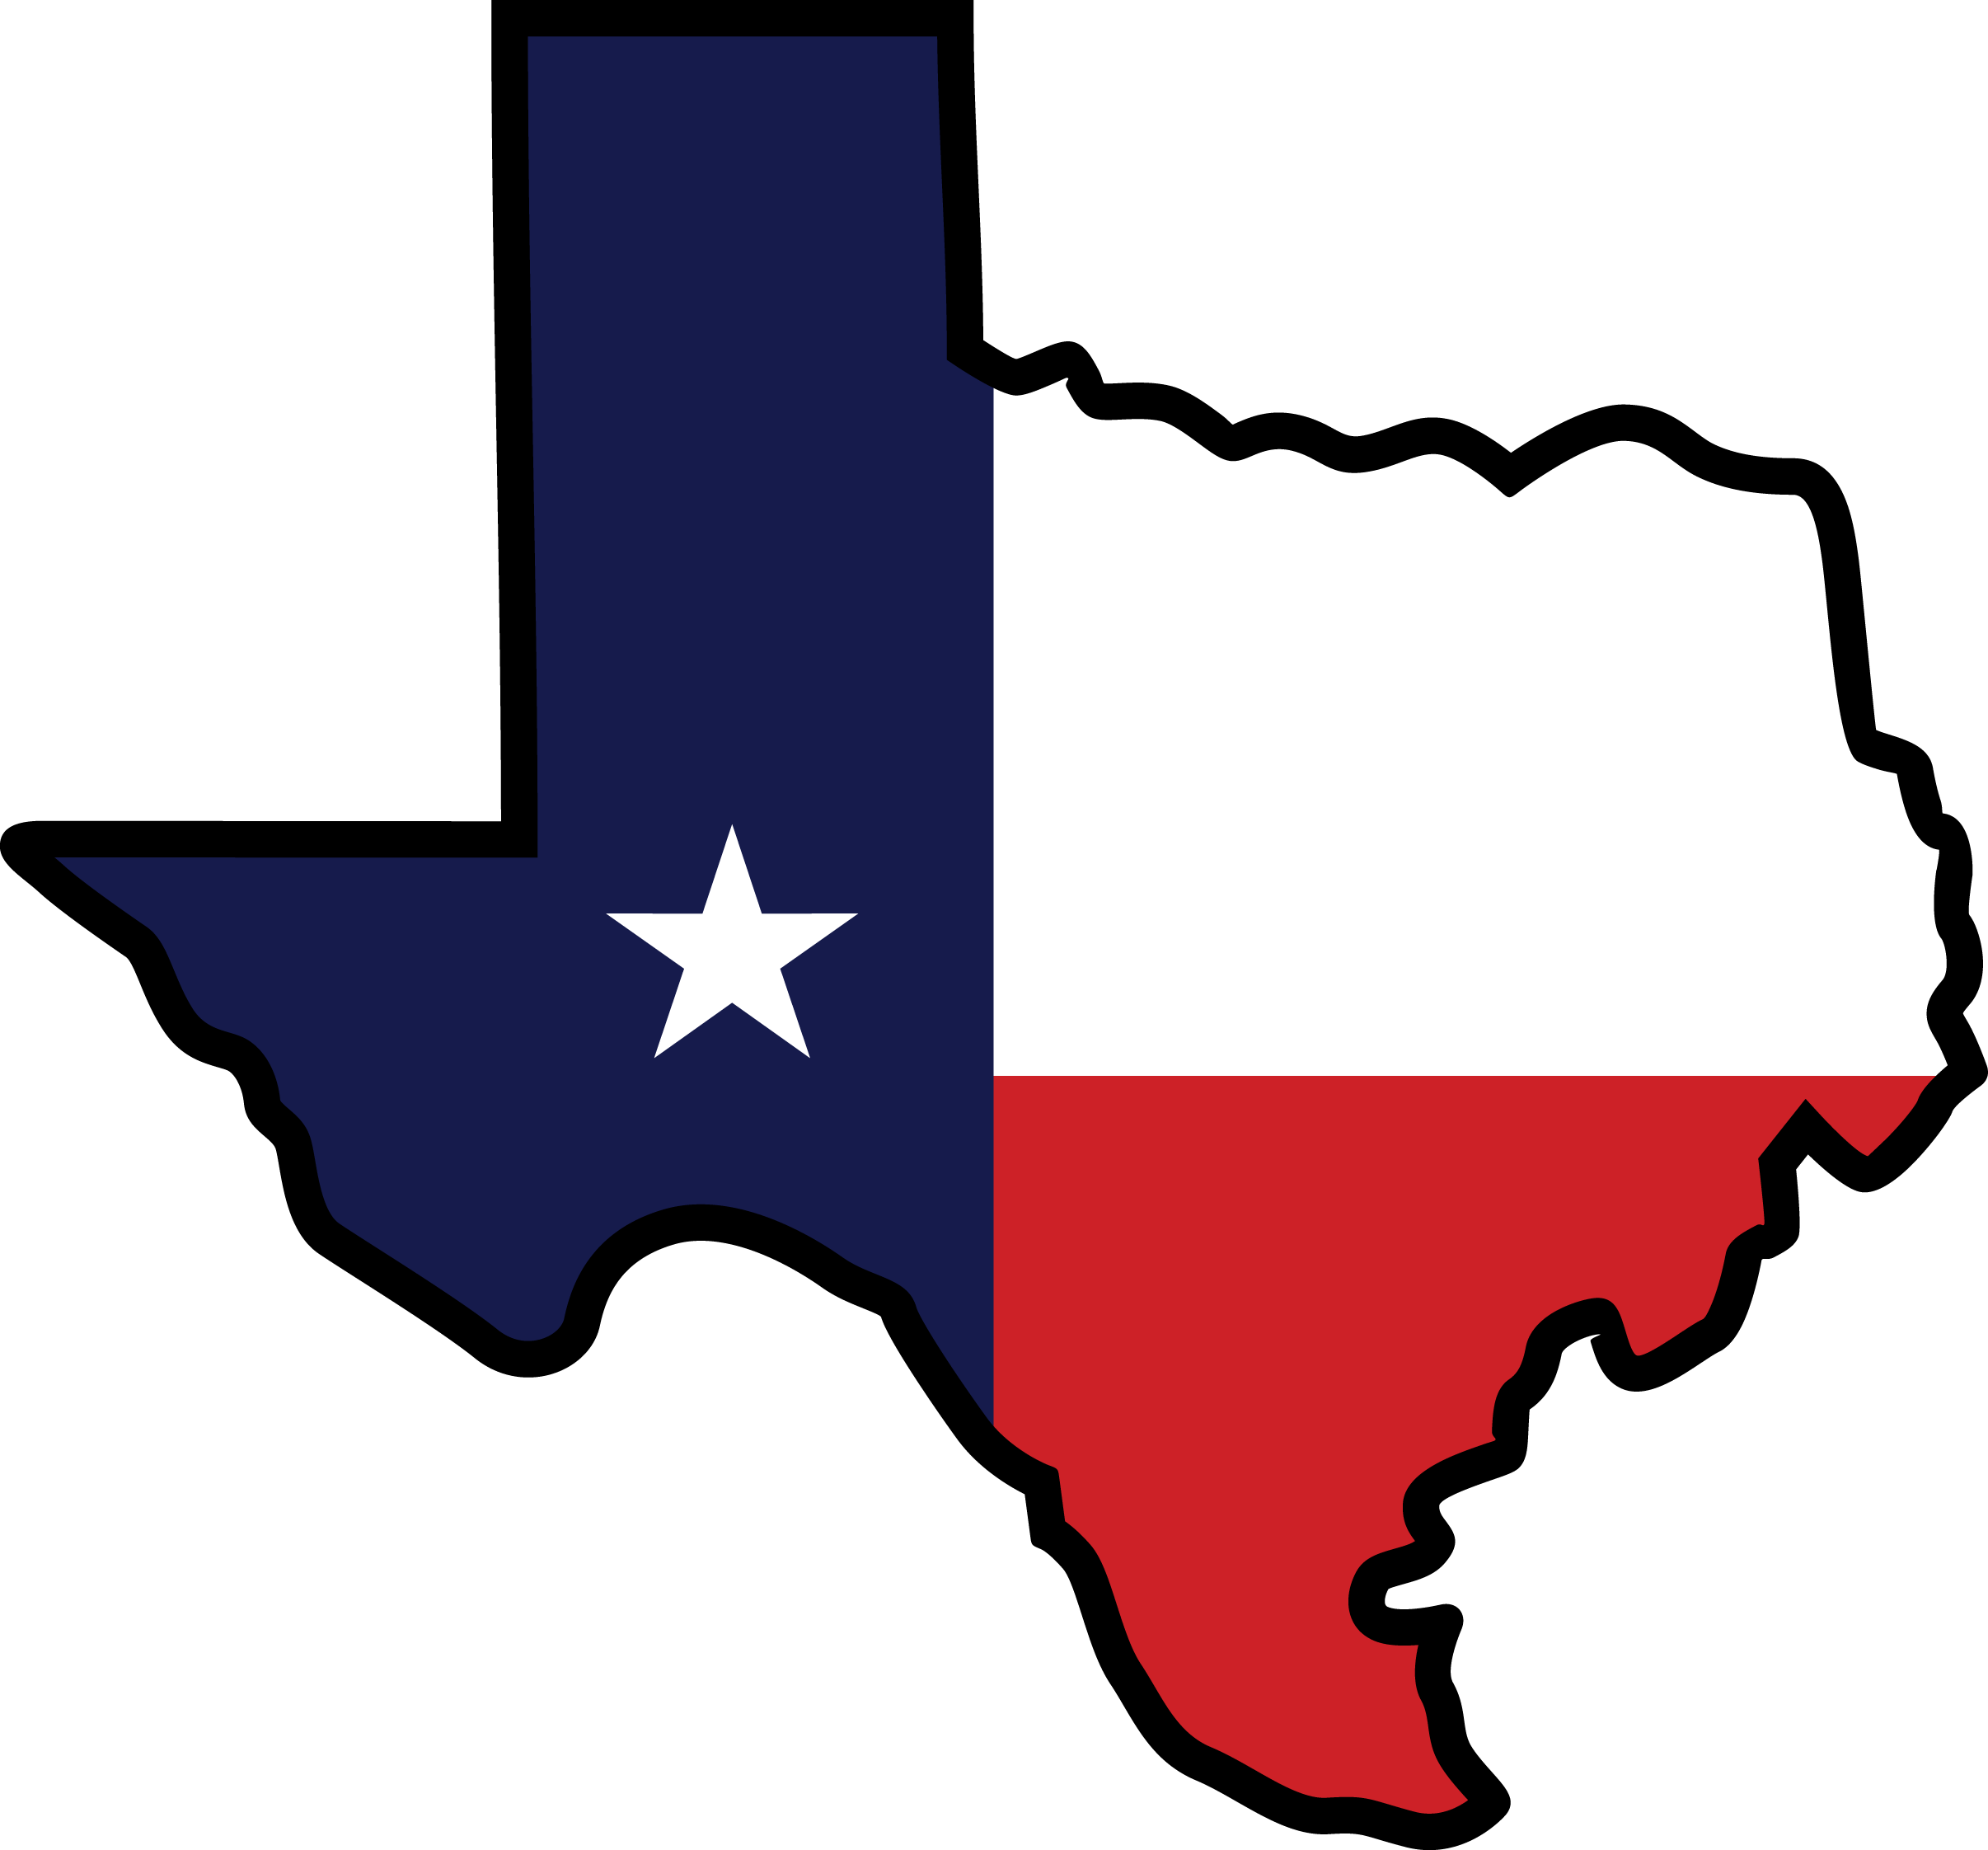 Texas Flag Svg File United States Svg Designs Svgdesigns Com In 2020 Svg Design Texas Flags Design